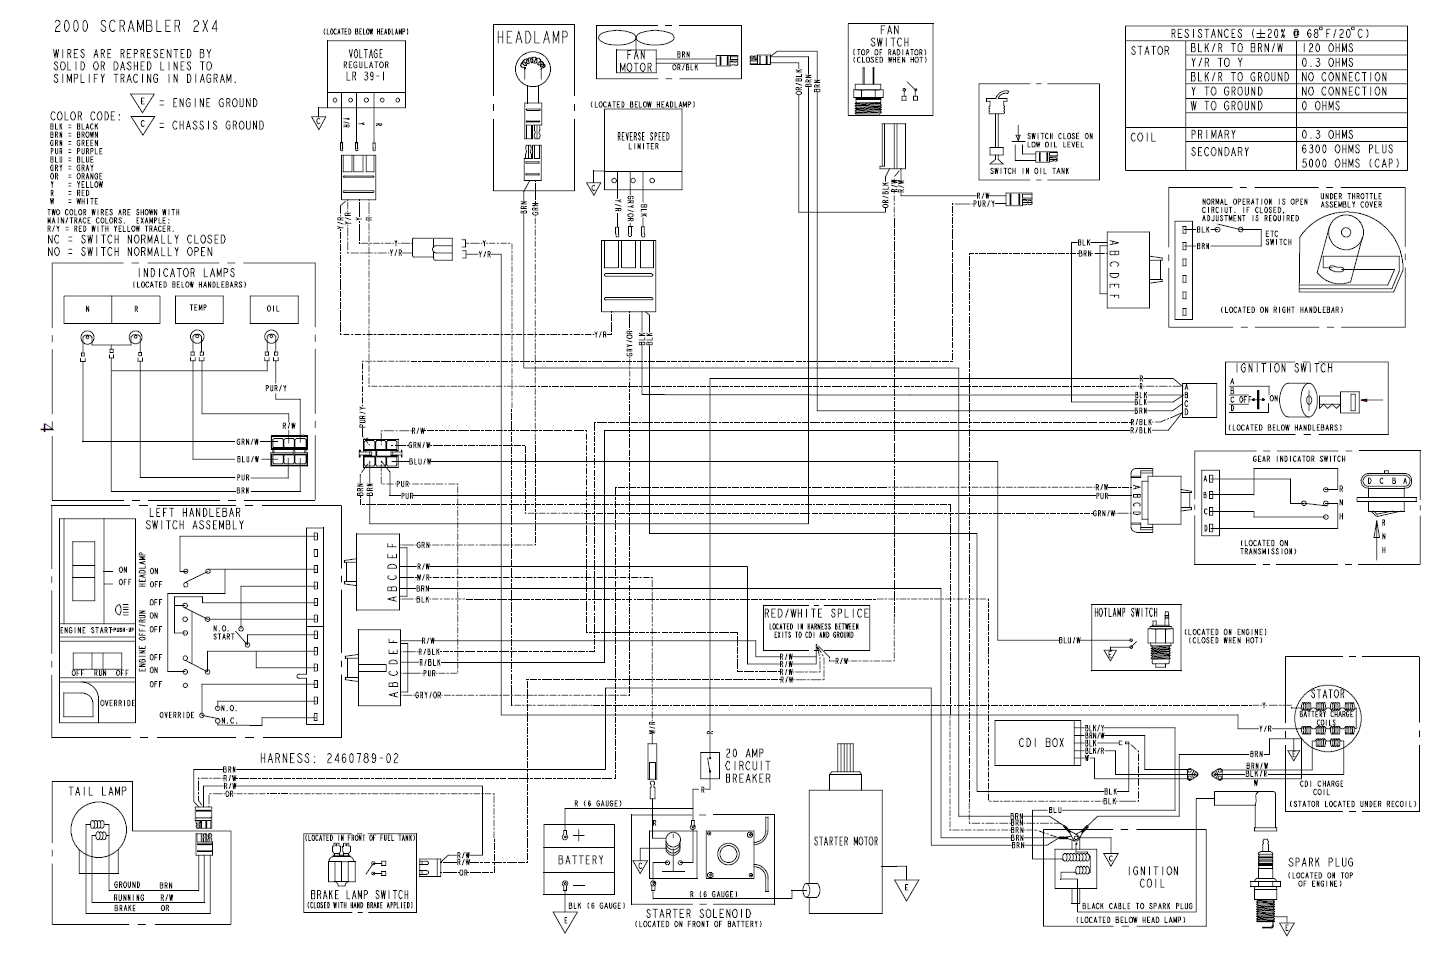 2009 Polaris Rzr Wiring Diagram - Honda Engine Wiring Harness for Wiring  Diagram SchematicsWiring Diagram Schematics